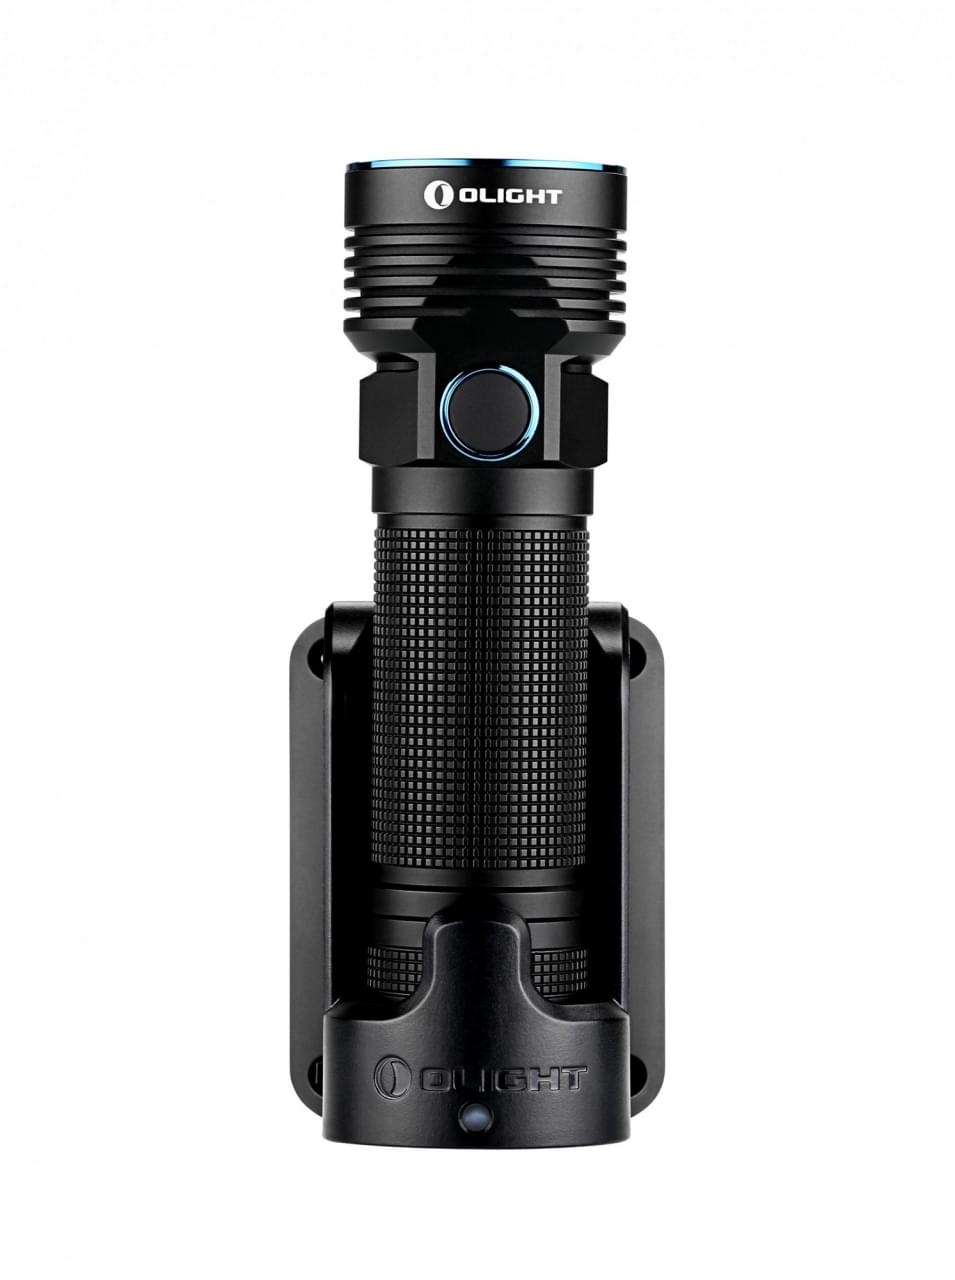 Olight R50 Pro Seeker LE Rechargeable